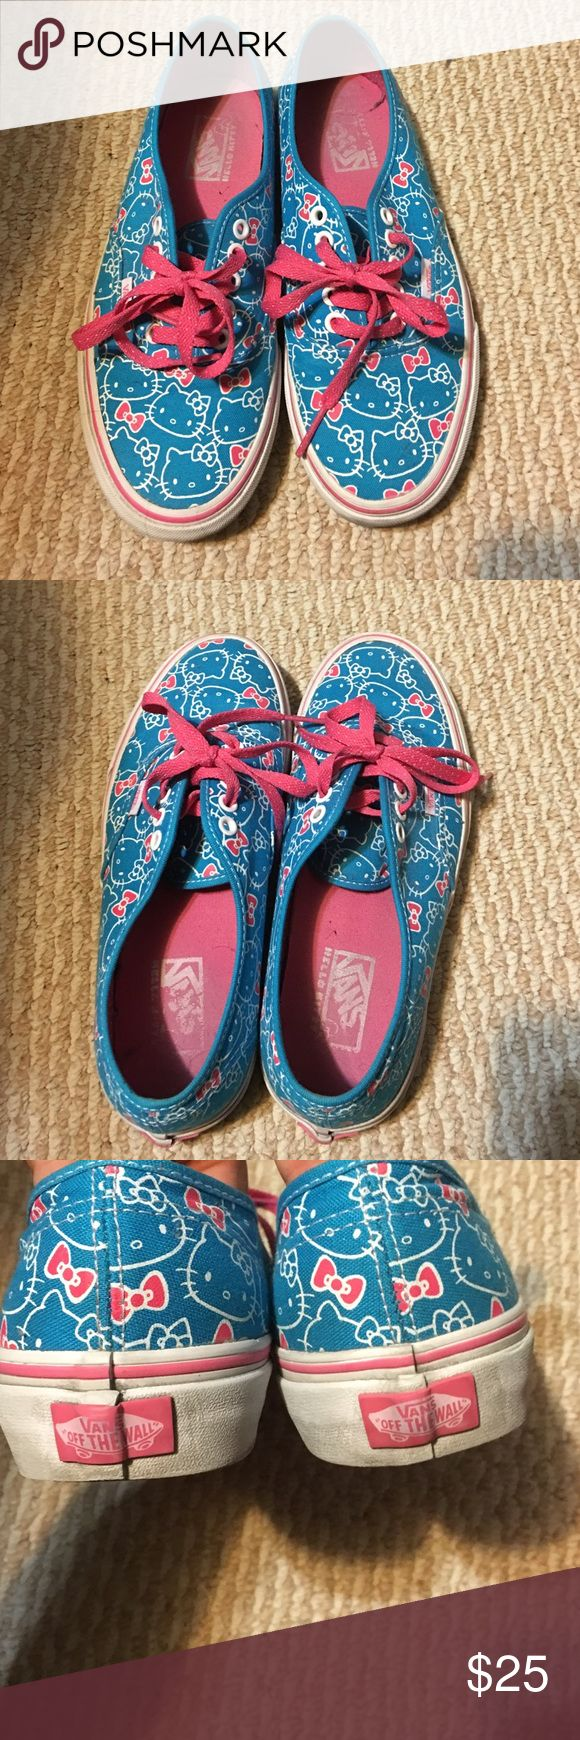 SALE! 🎉 Pink and teal hello kitty Vans Pink and teal hello kitty vans. Great condition. Rare edition. Pink polka dotted laces. Inner and outer soles in great condition Vans Shoes Athletic Shoes